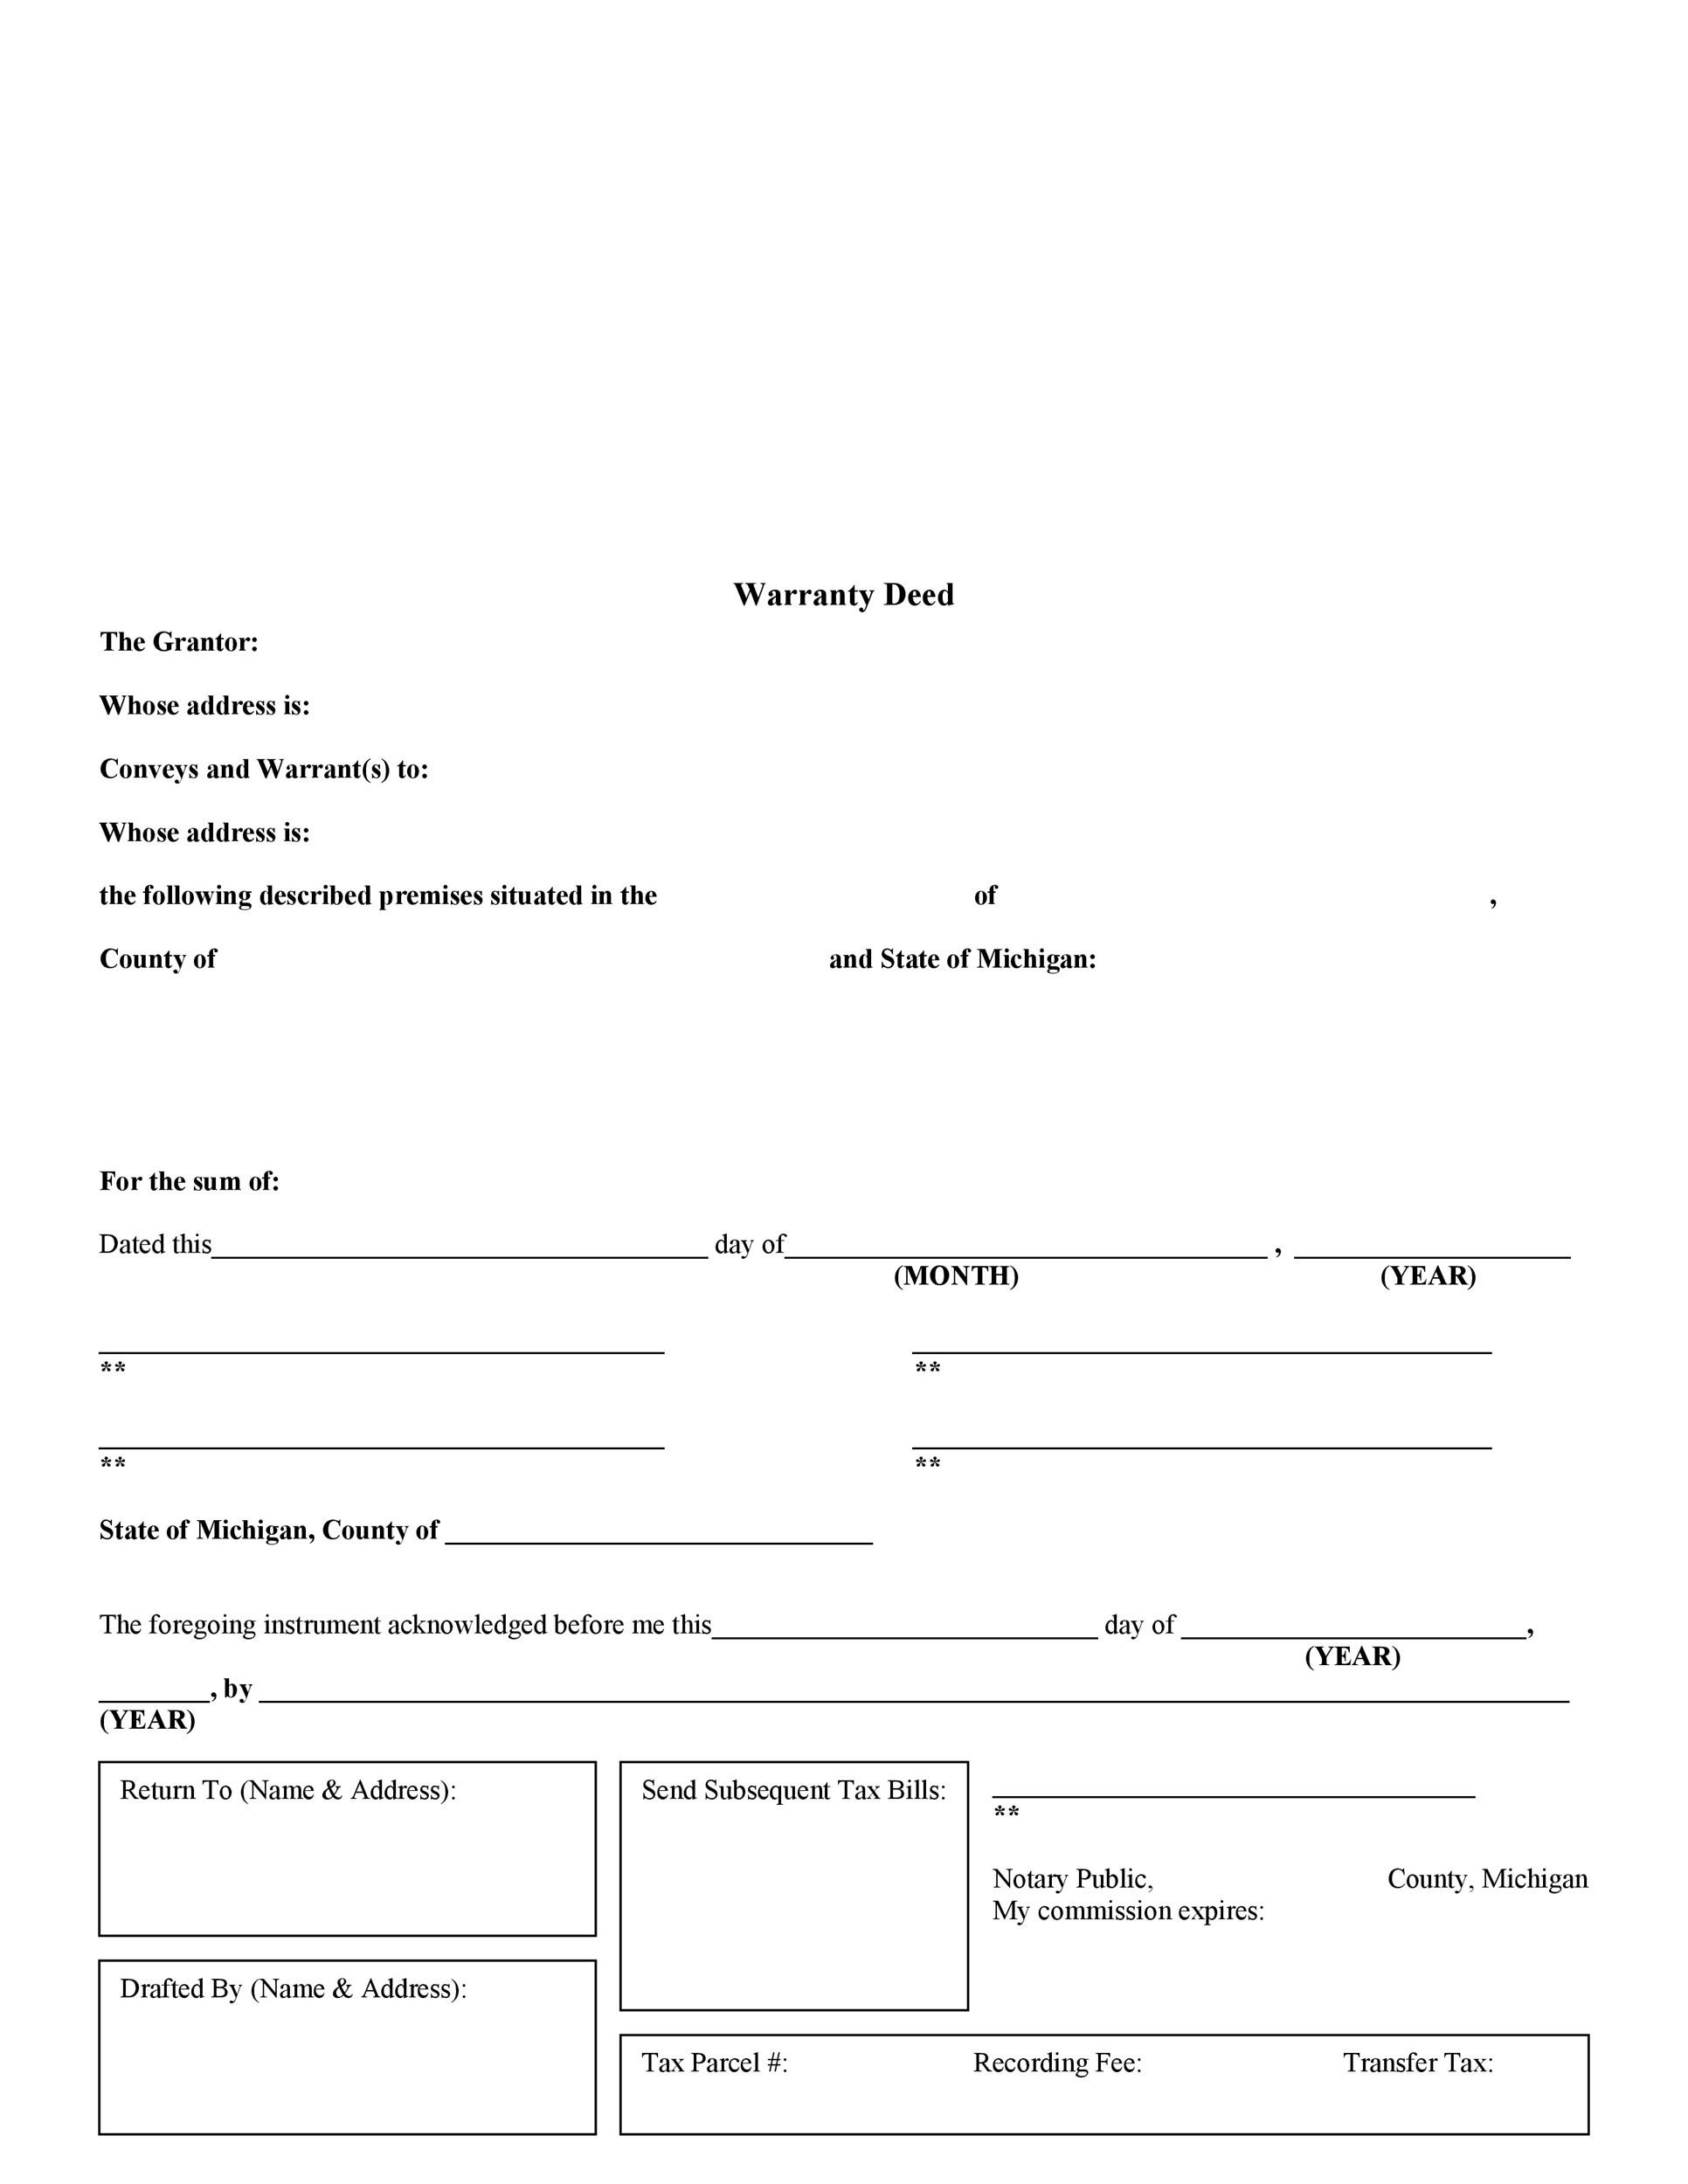 Free Warranty deed template 20